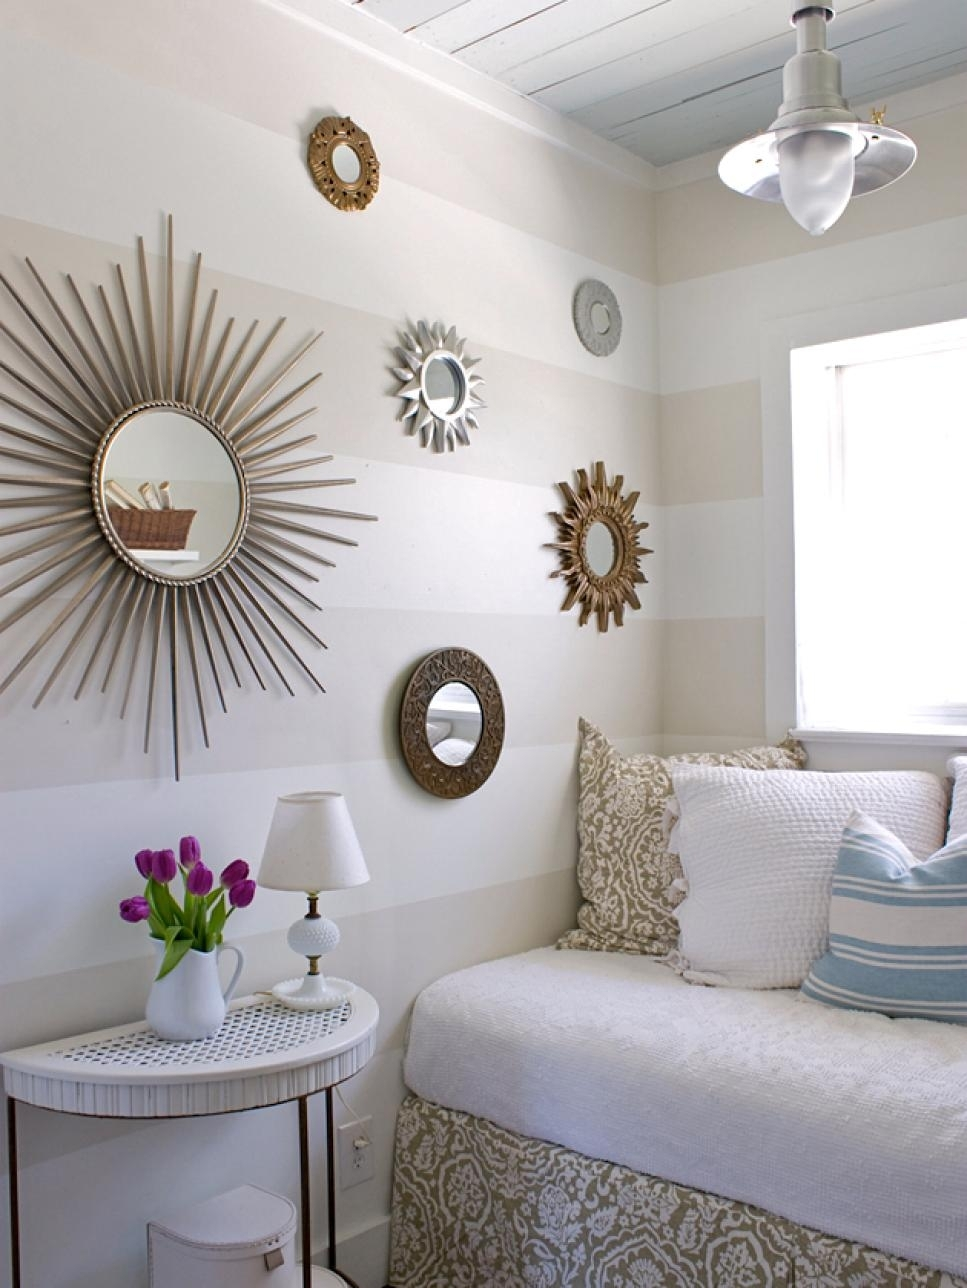 10 Pretty Room Decor Ideas For Small Rooms %name 2020